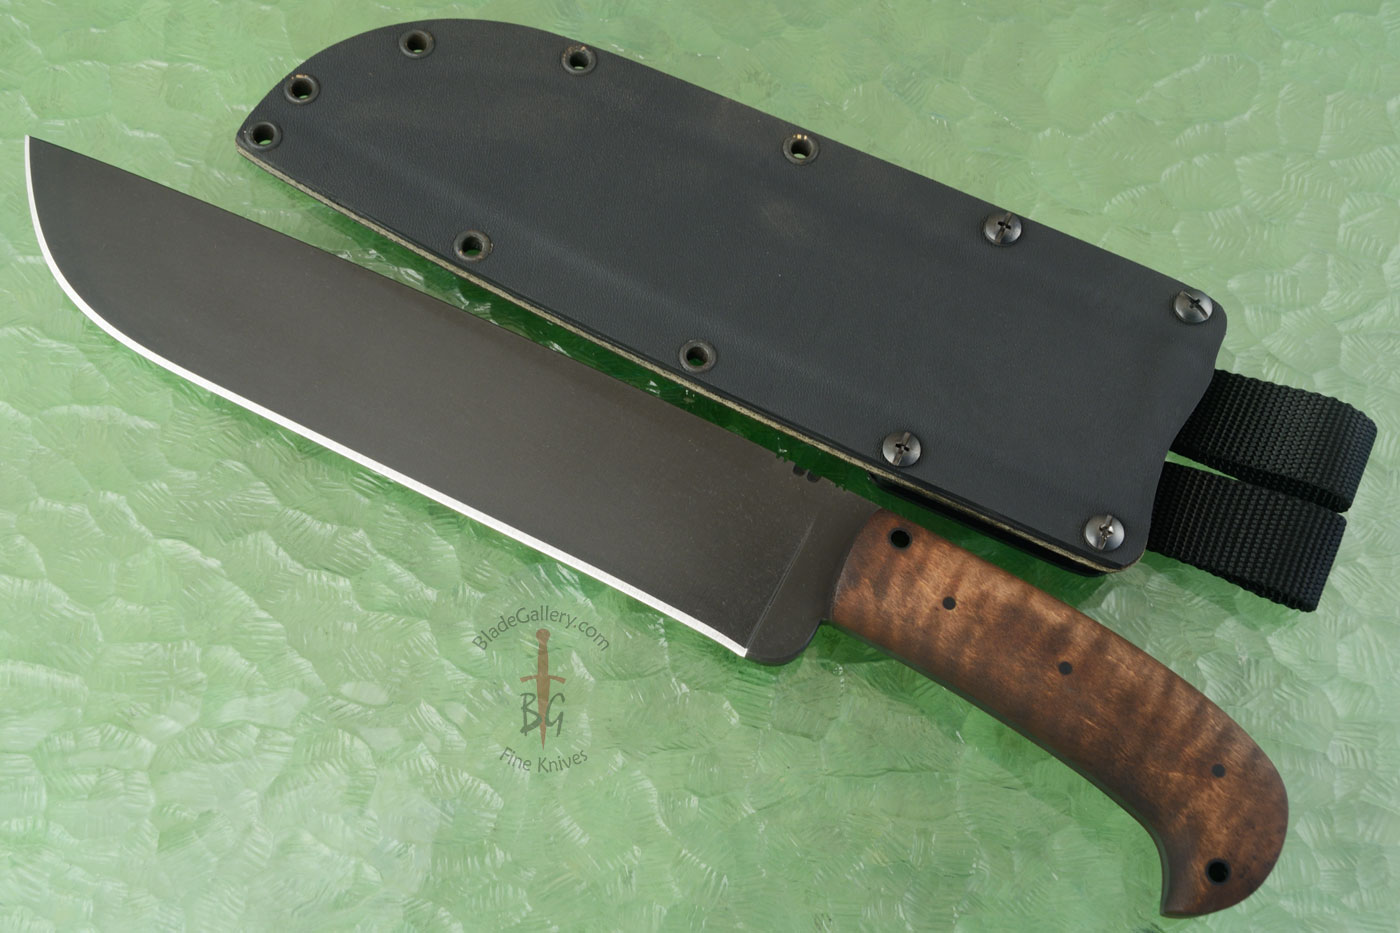 Camp Knife with Maple